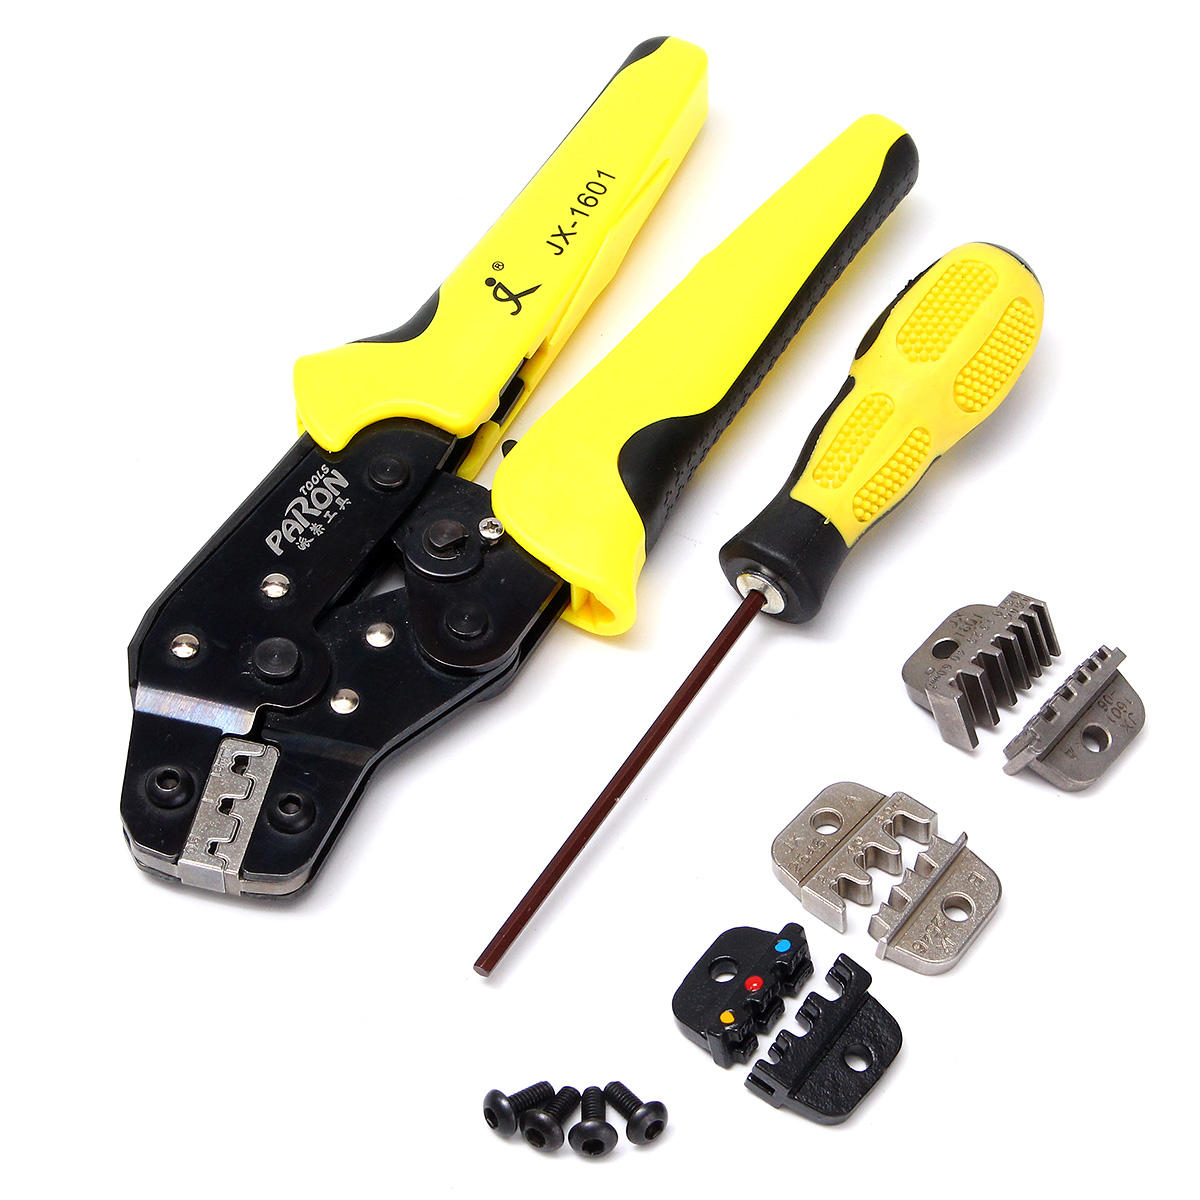 Professional Wire Crimper Pliers Ratcheting Terminal Crimping Tool ...